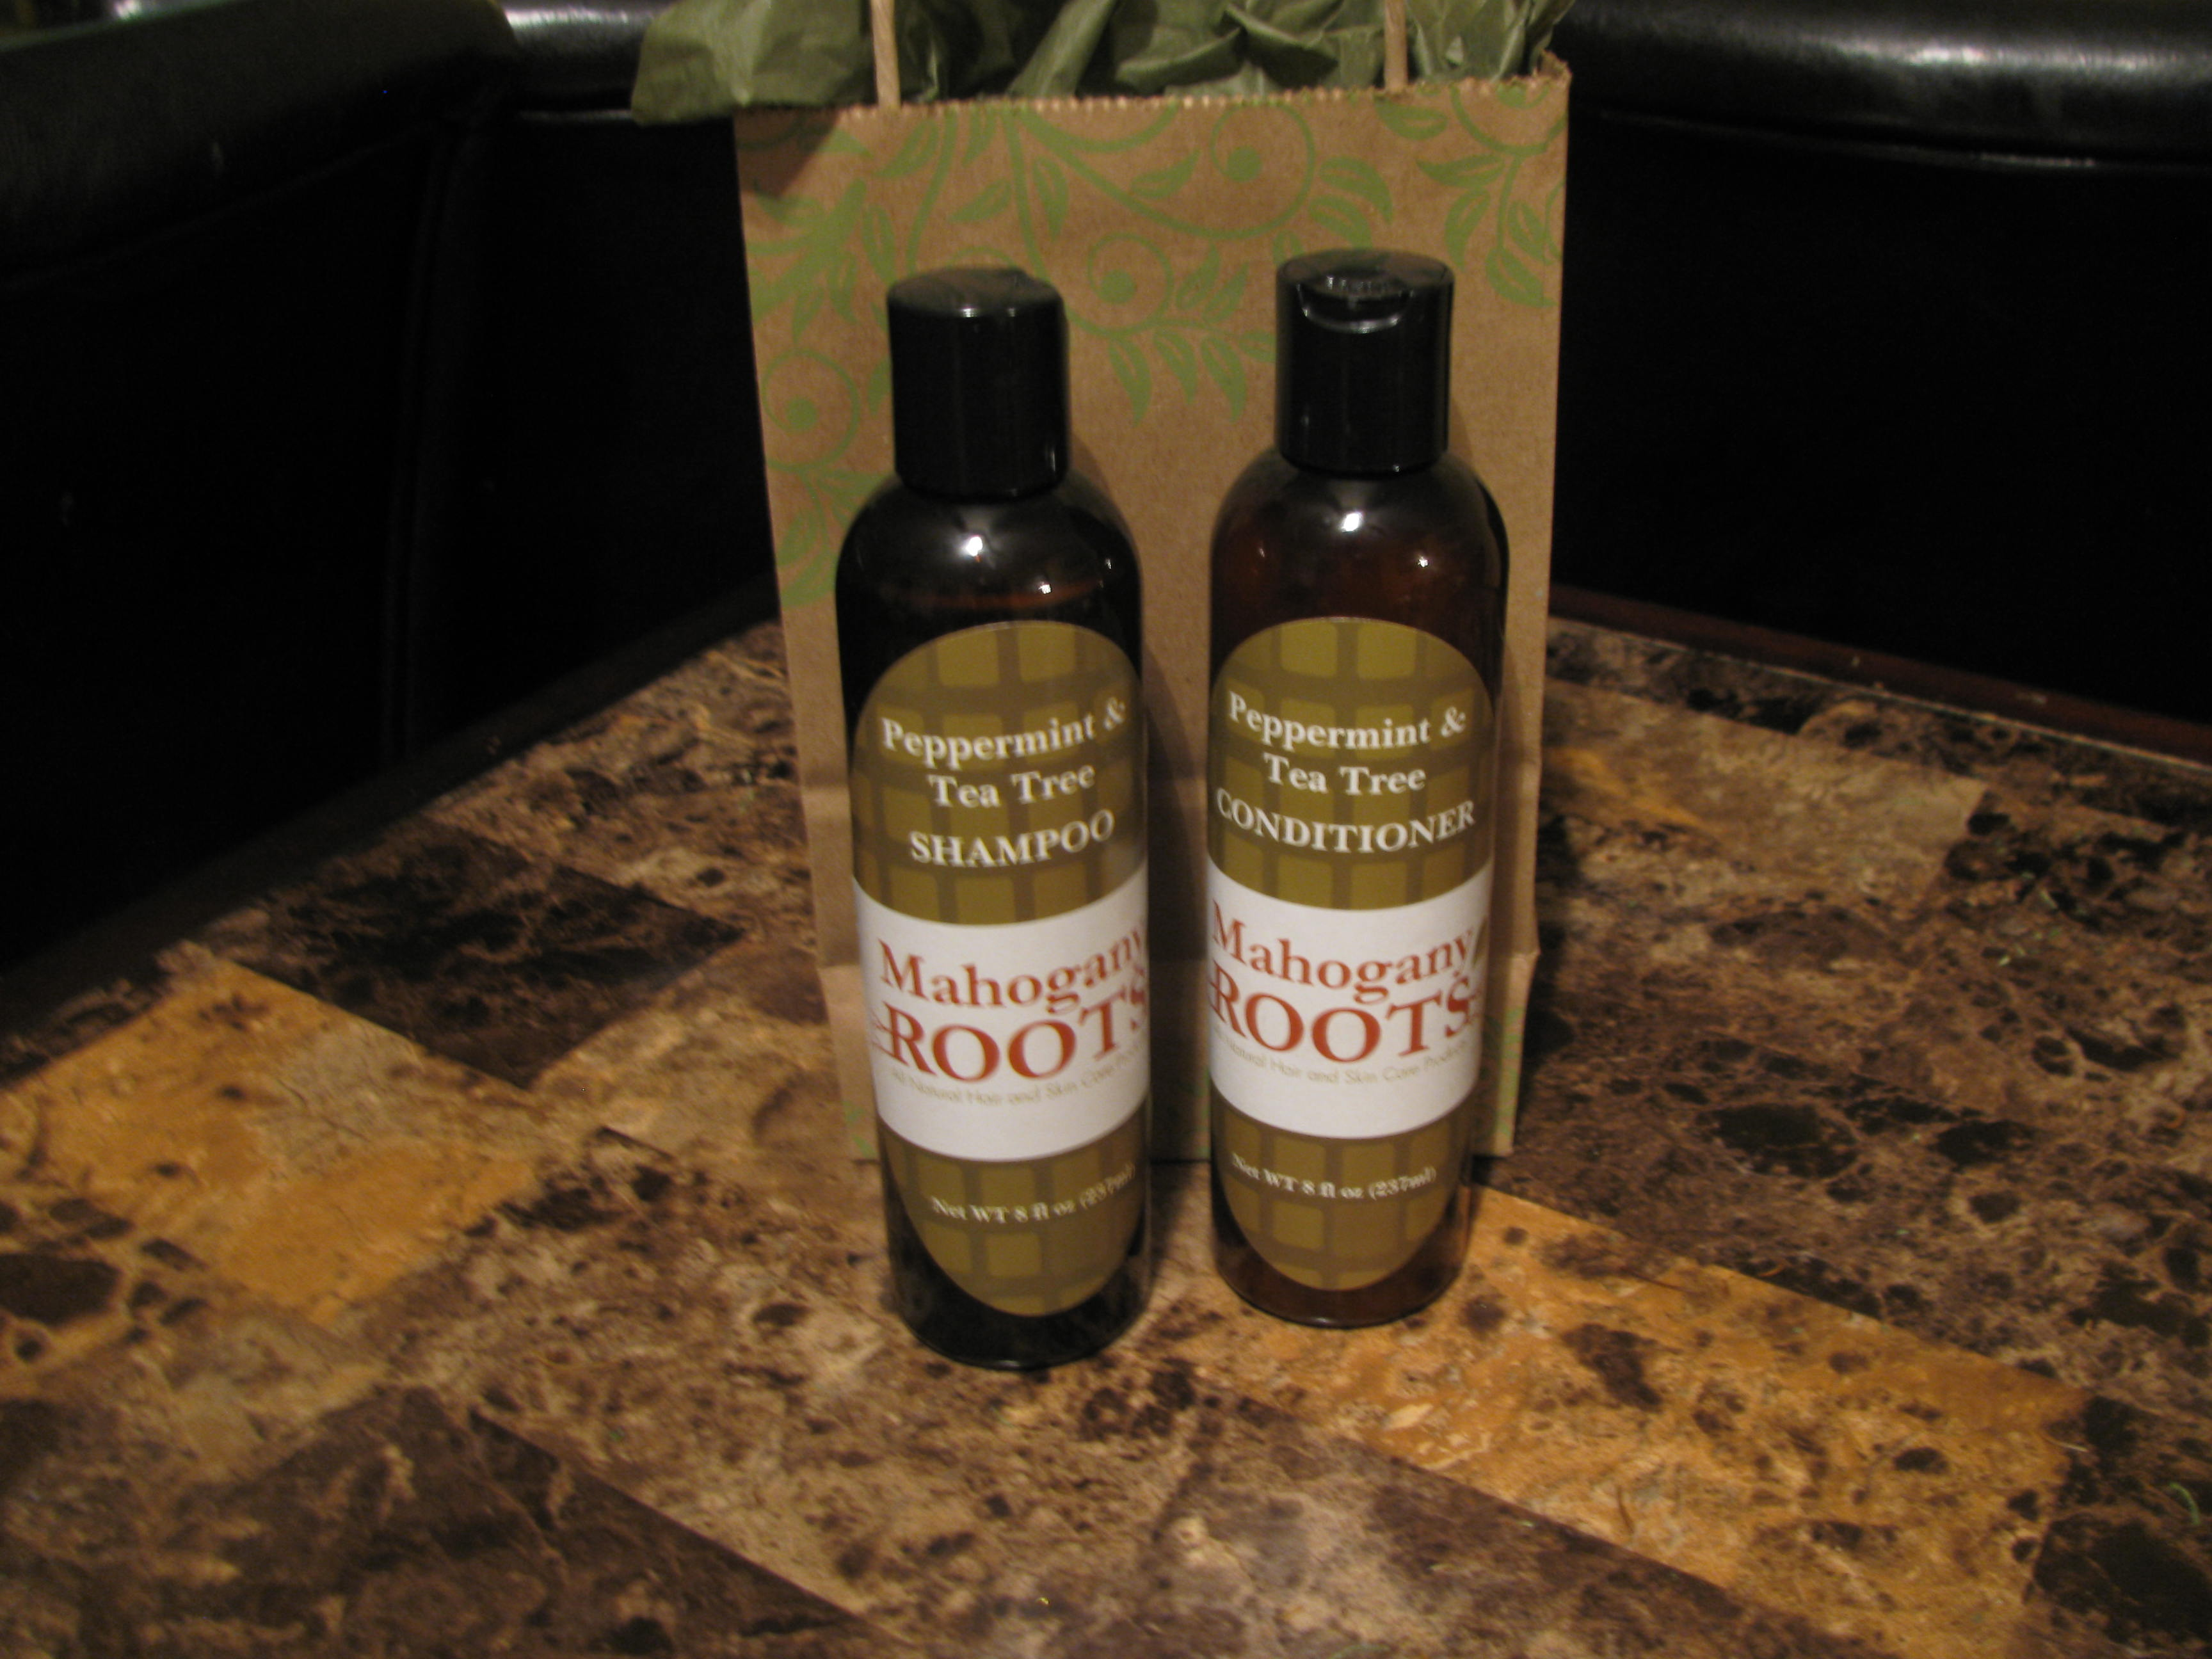 Peppermint and Tea Tree Conditioner